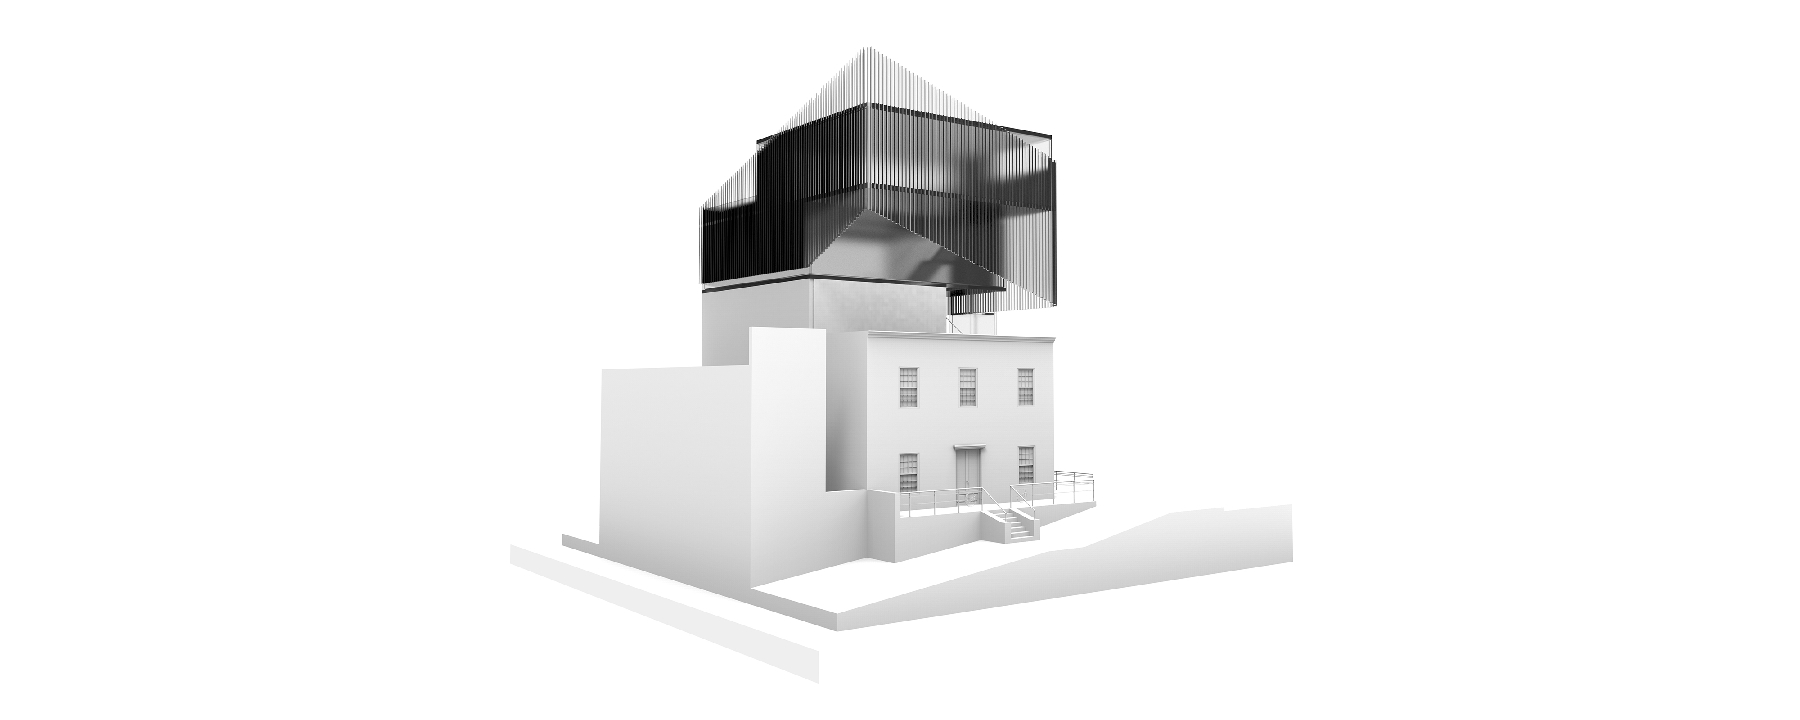 Handre de la Rey Cape Town Architecture Proposal 002